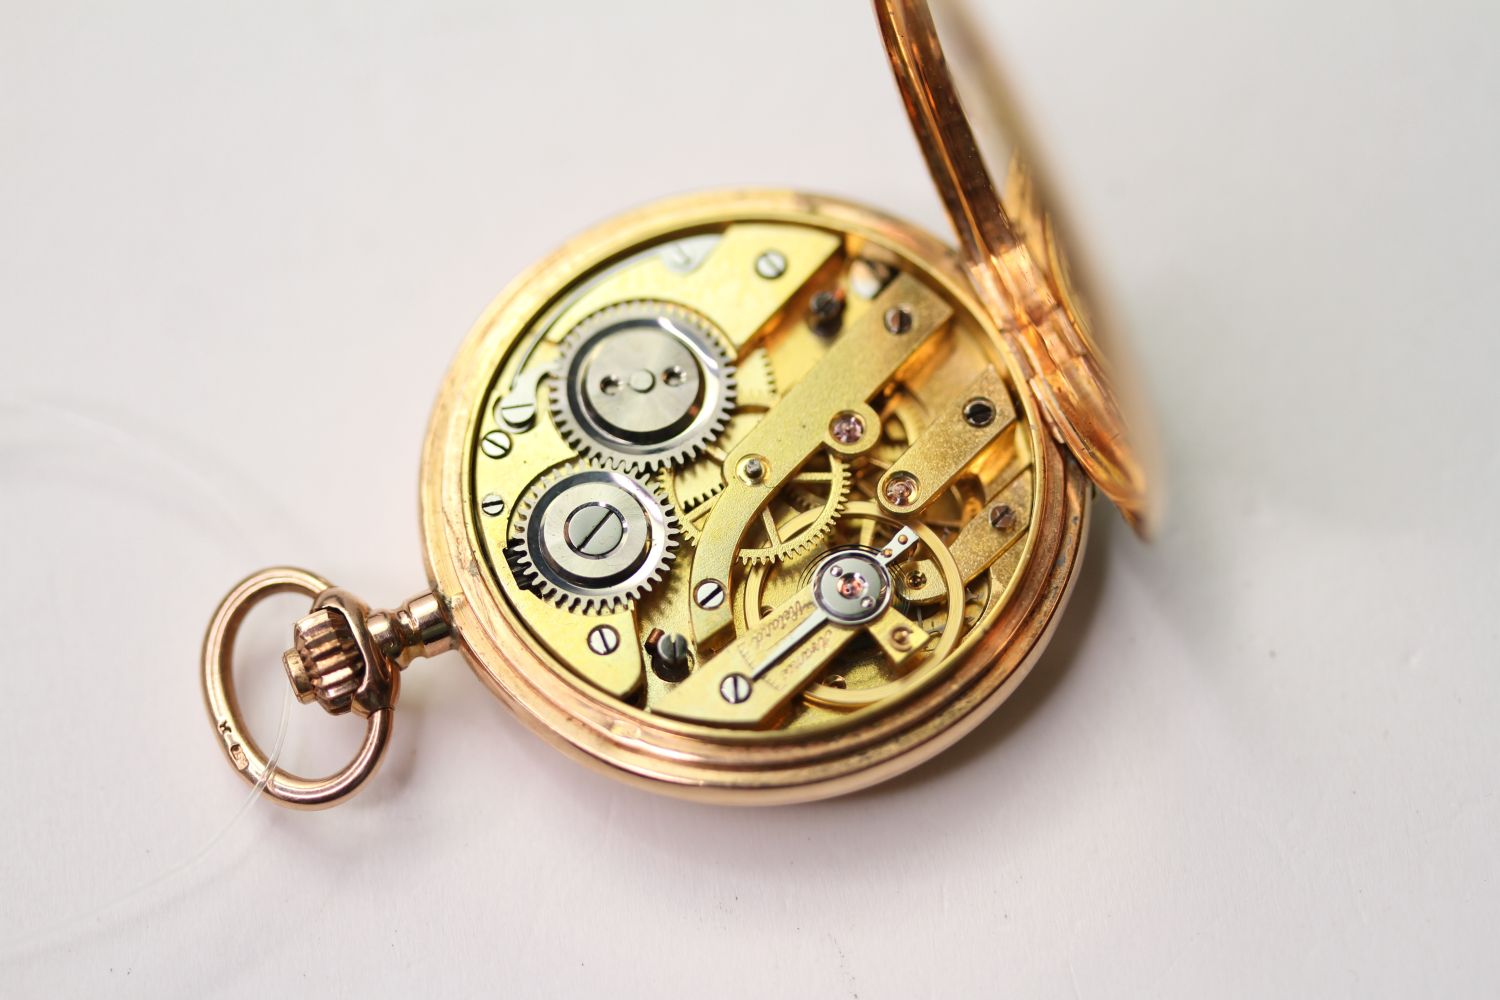 14CT GOLD FOB WATCH, circular white dial with arabic numbers, 31mm case, stamped J.G.F. 585 33523, - Image 4 of 4